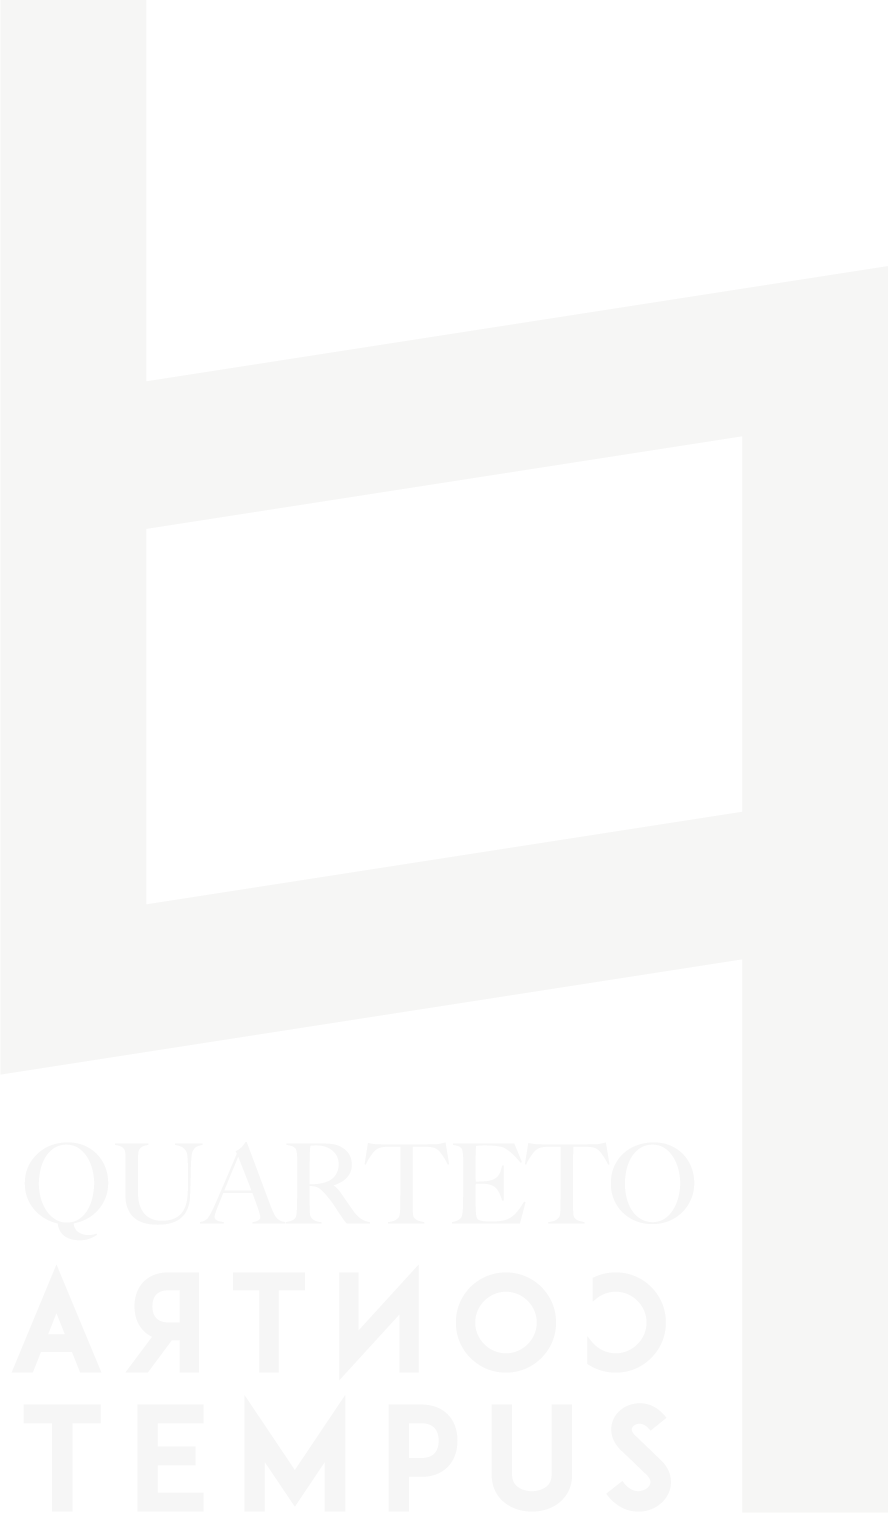 Quarteto Contratempus